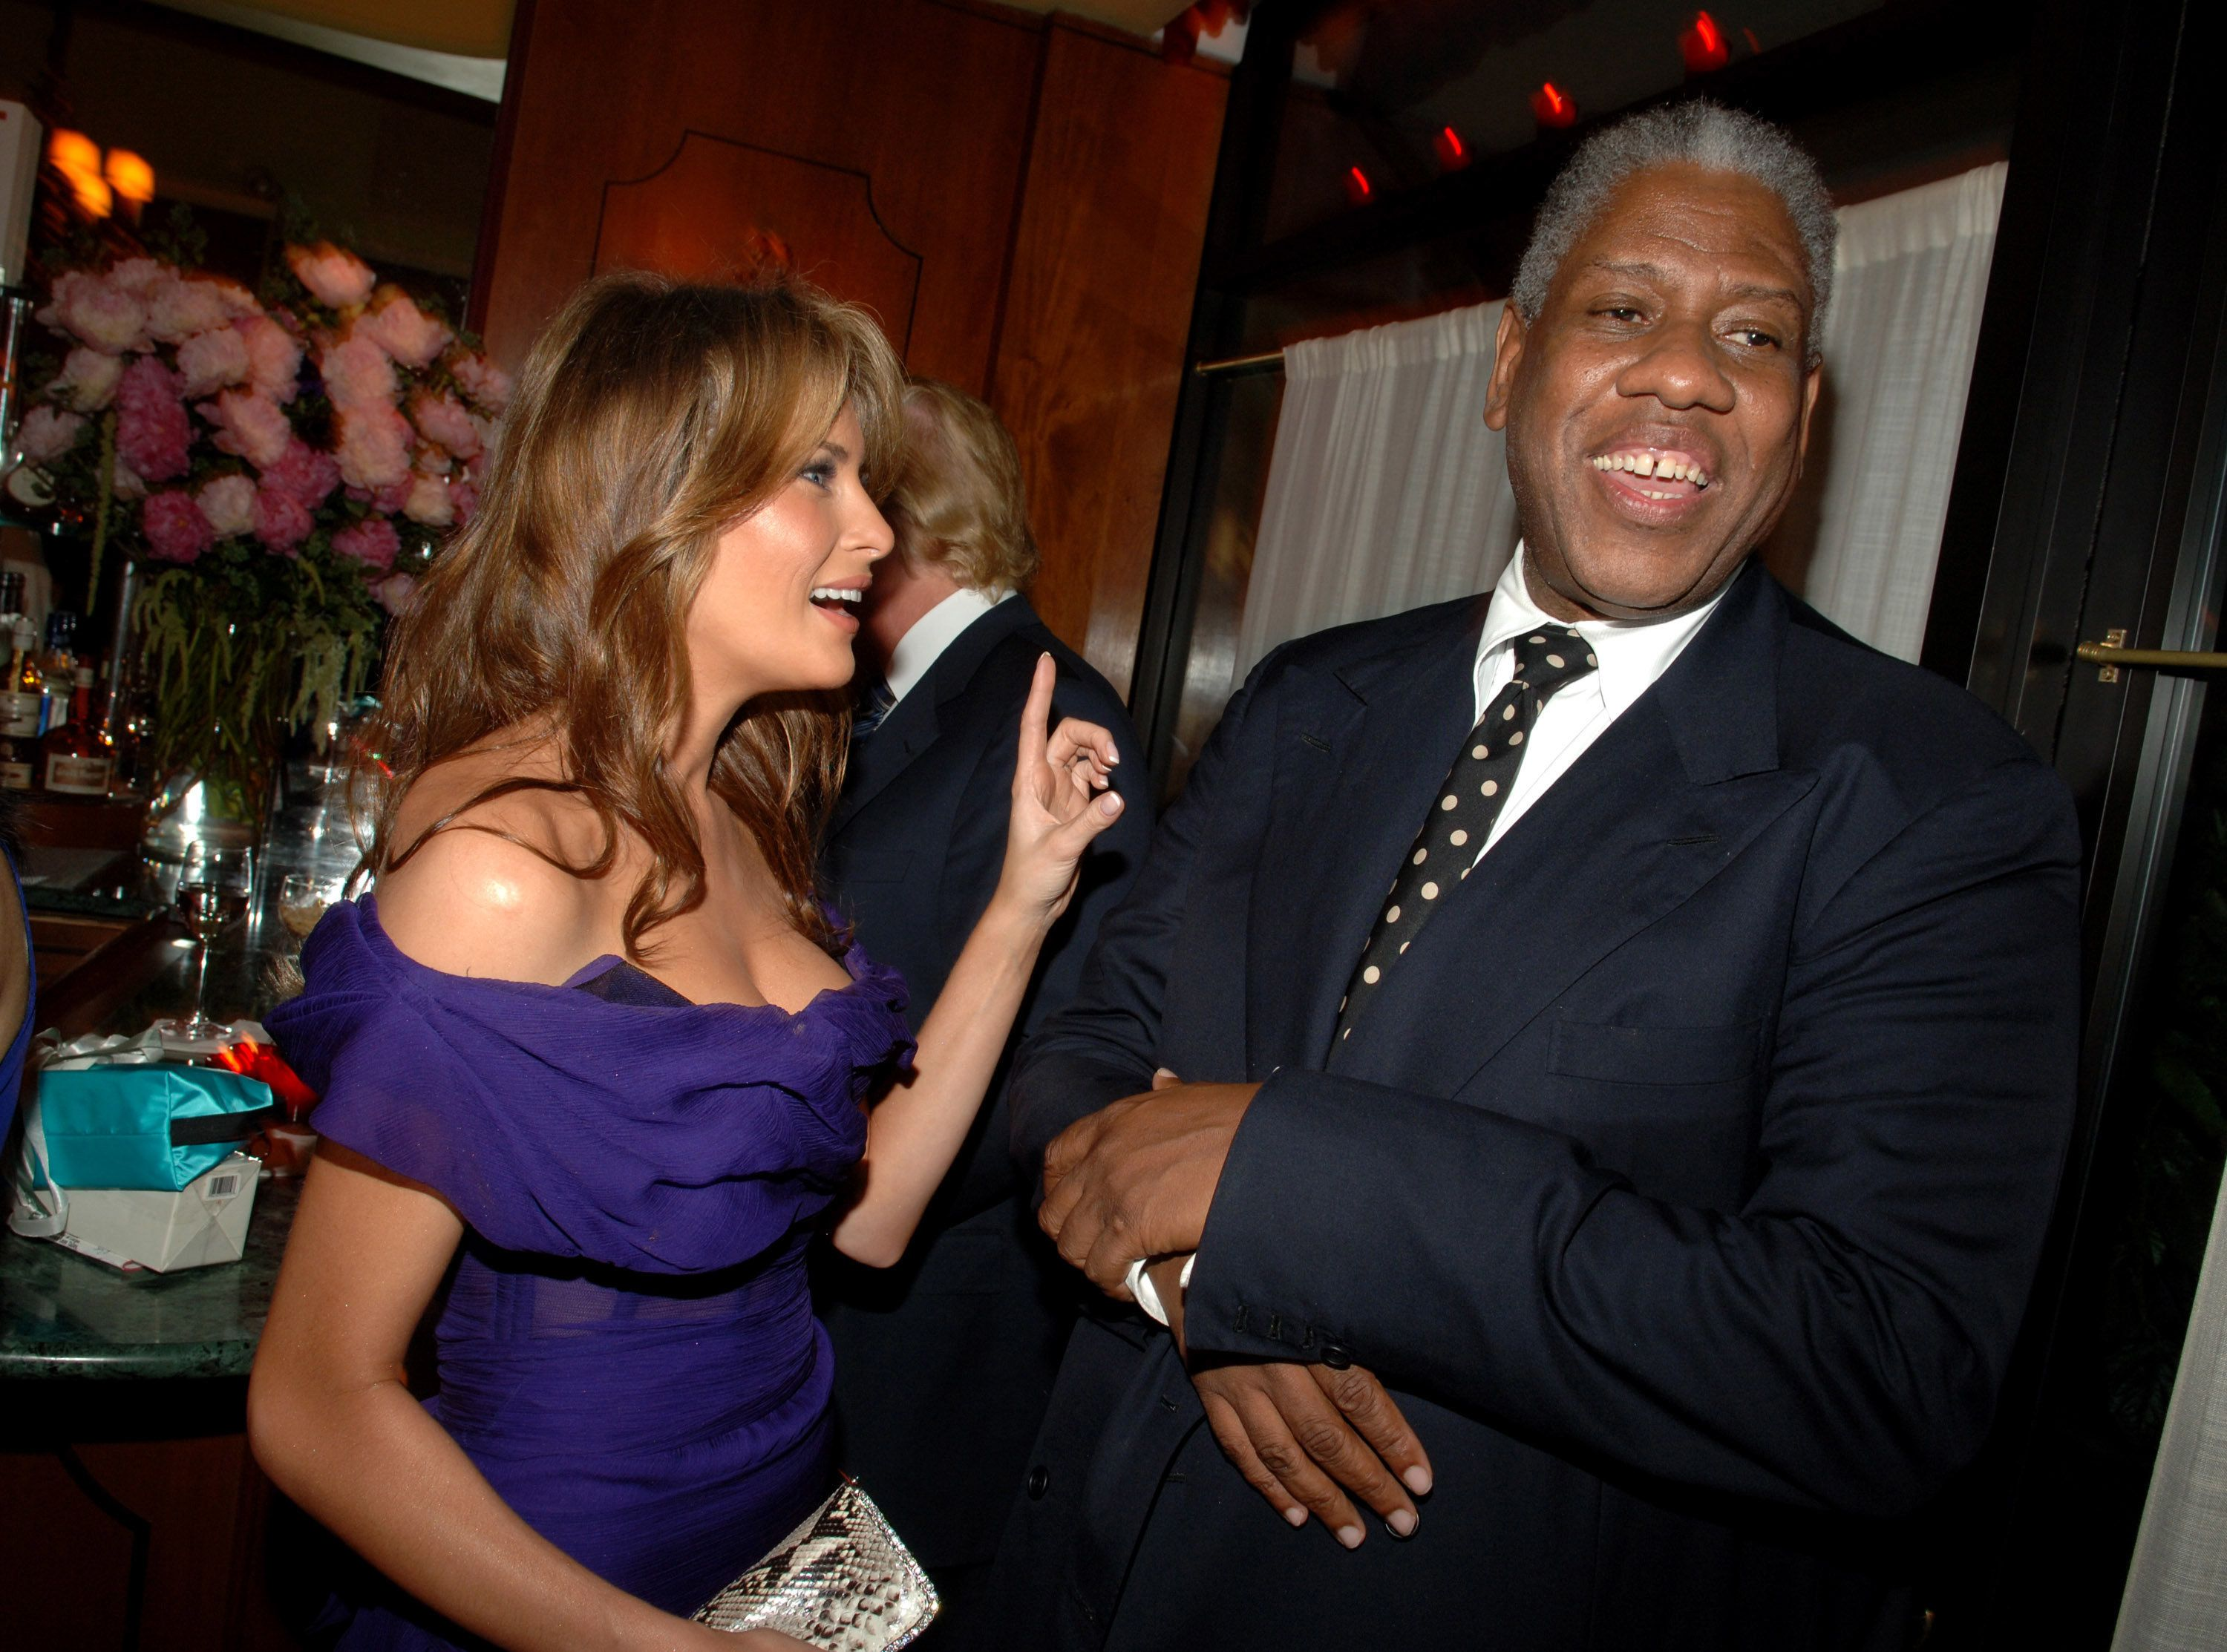 Melania Trump and Andre Leon Talley during MAC Cosmetics Hosts Launch Party for Andre Leon Talley's New Book, 'A.L.T. 365' at La Grenouille in New York City, New York, United States. (Photo by Stephen Lovekin/WireImage)